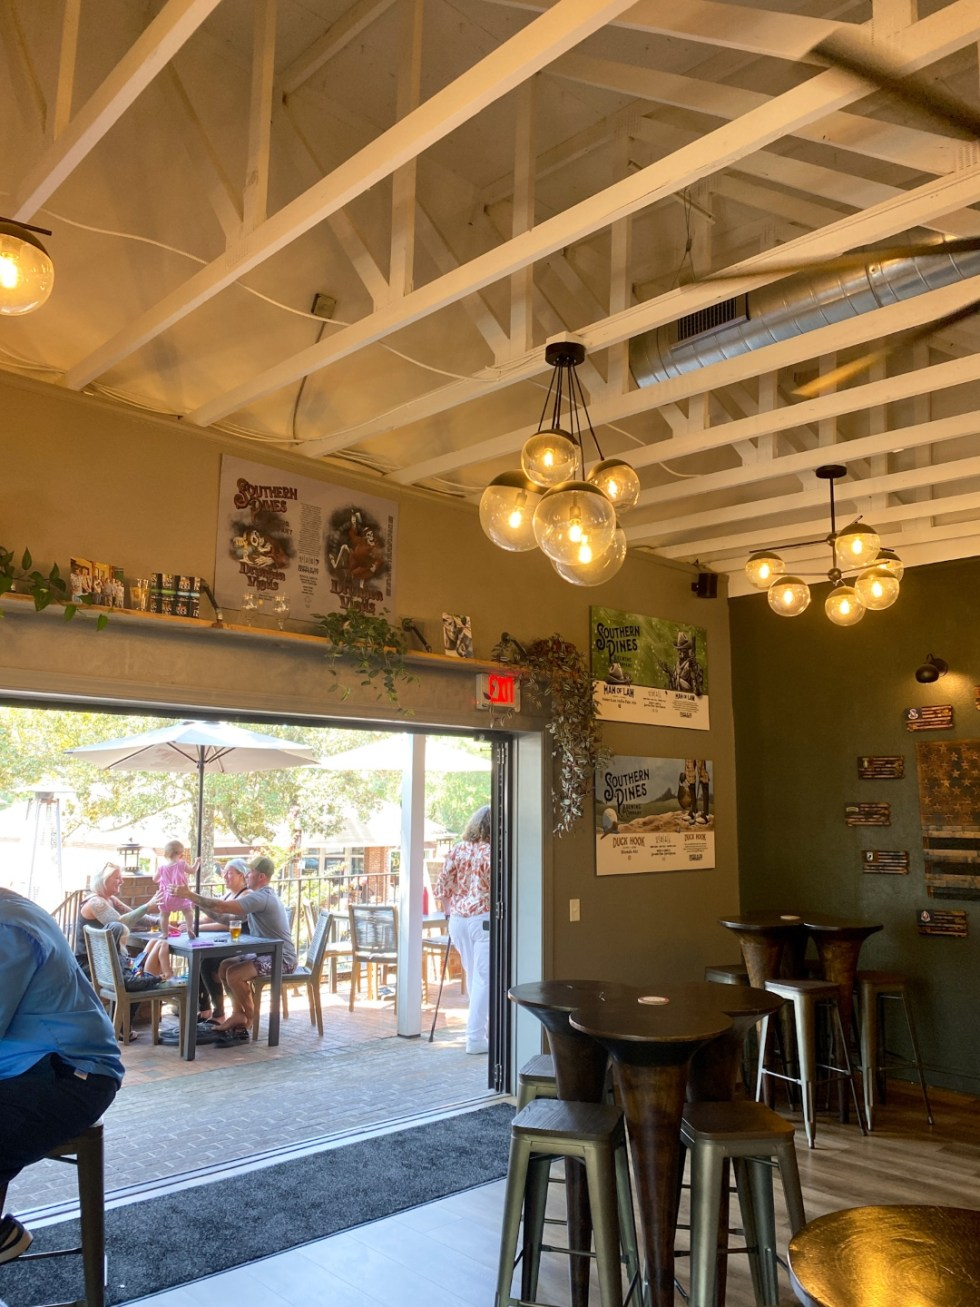 A Weekend in Southern Pines, NC - I'm Fixin' To - @imfixintoblog